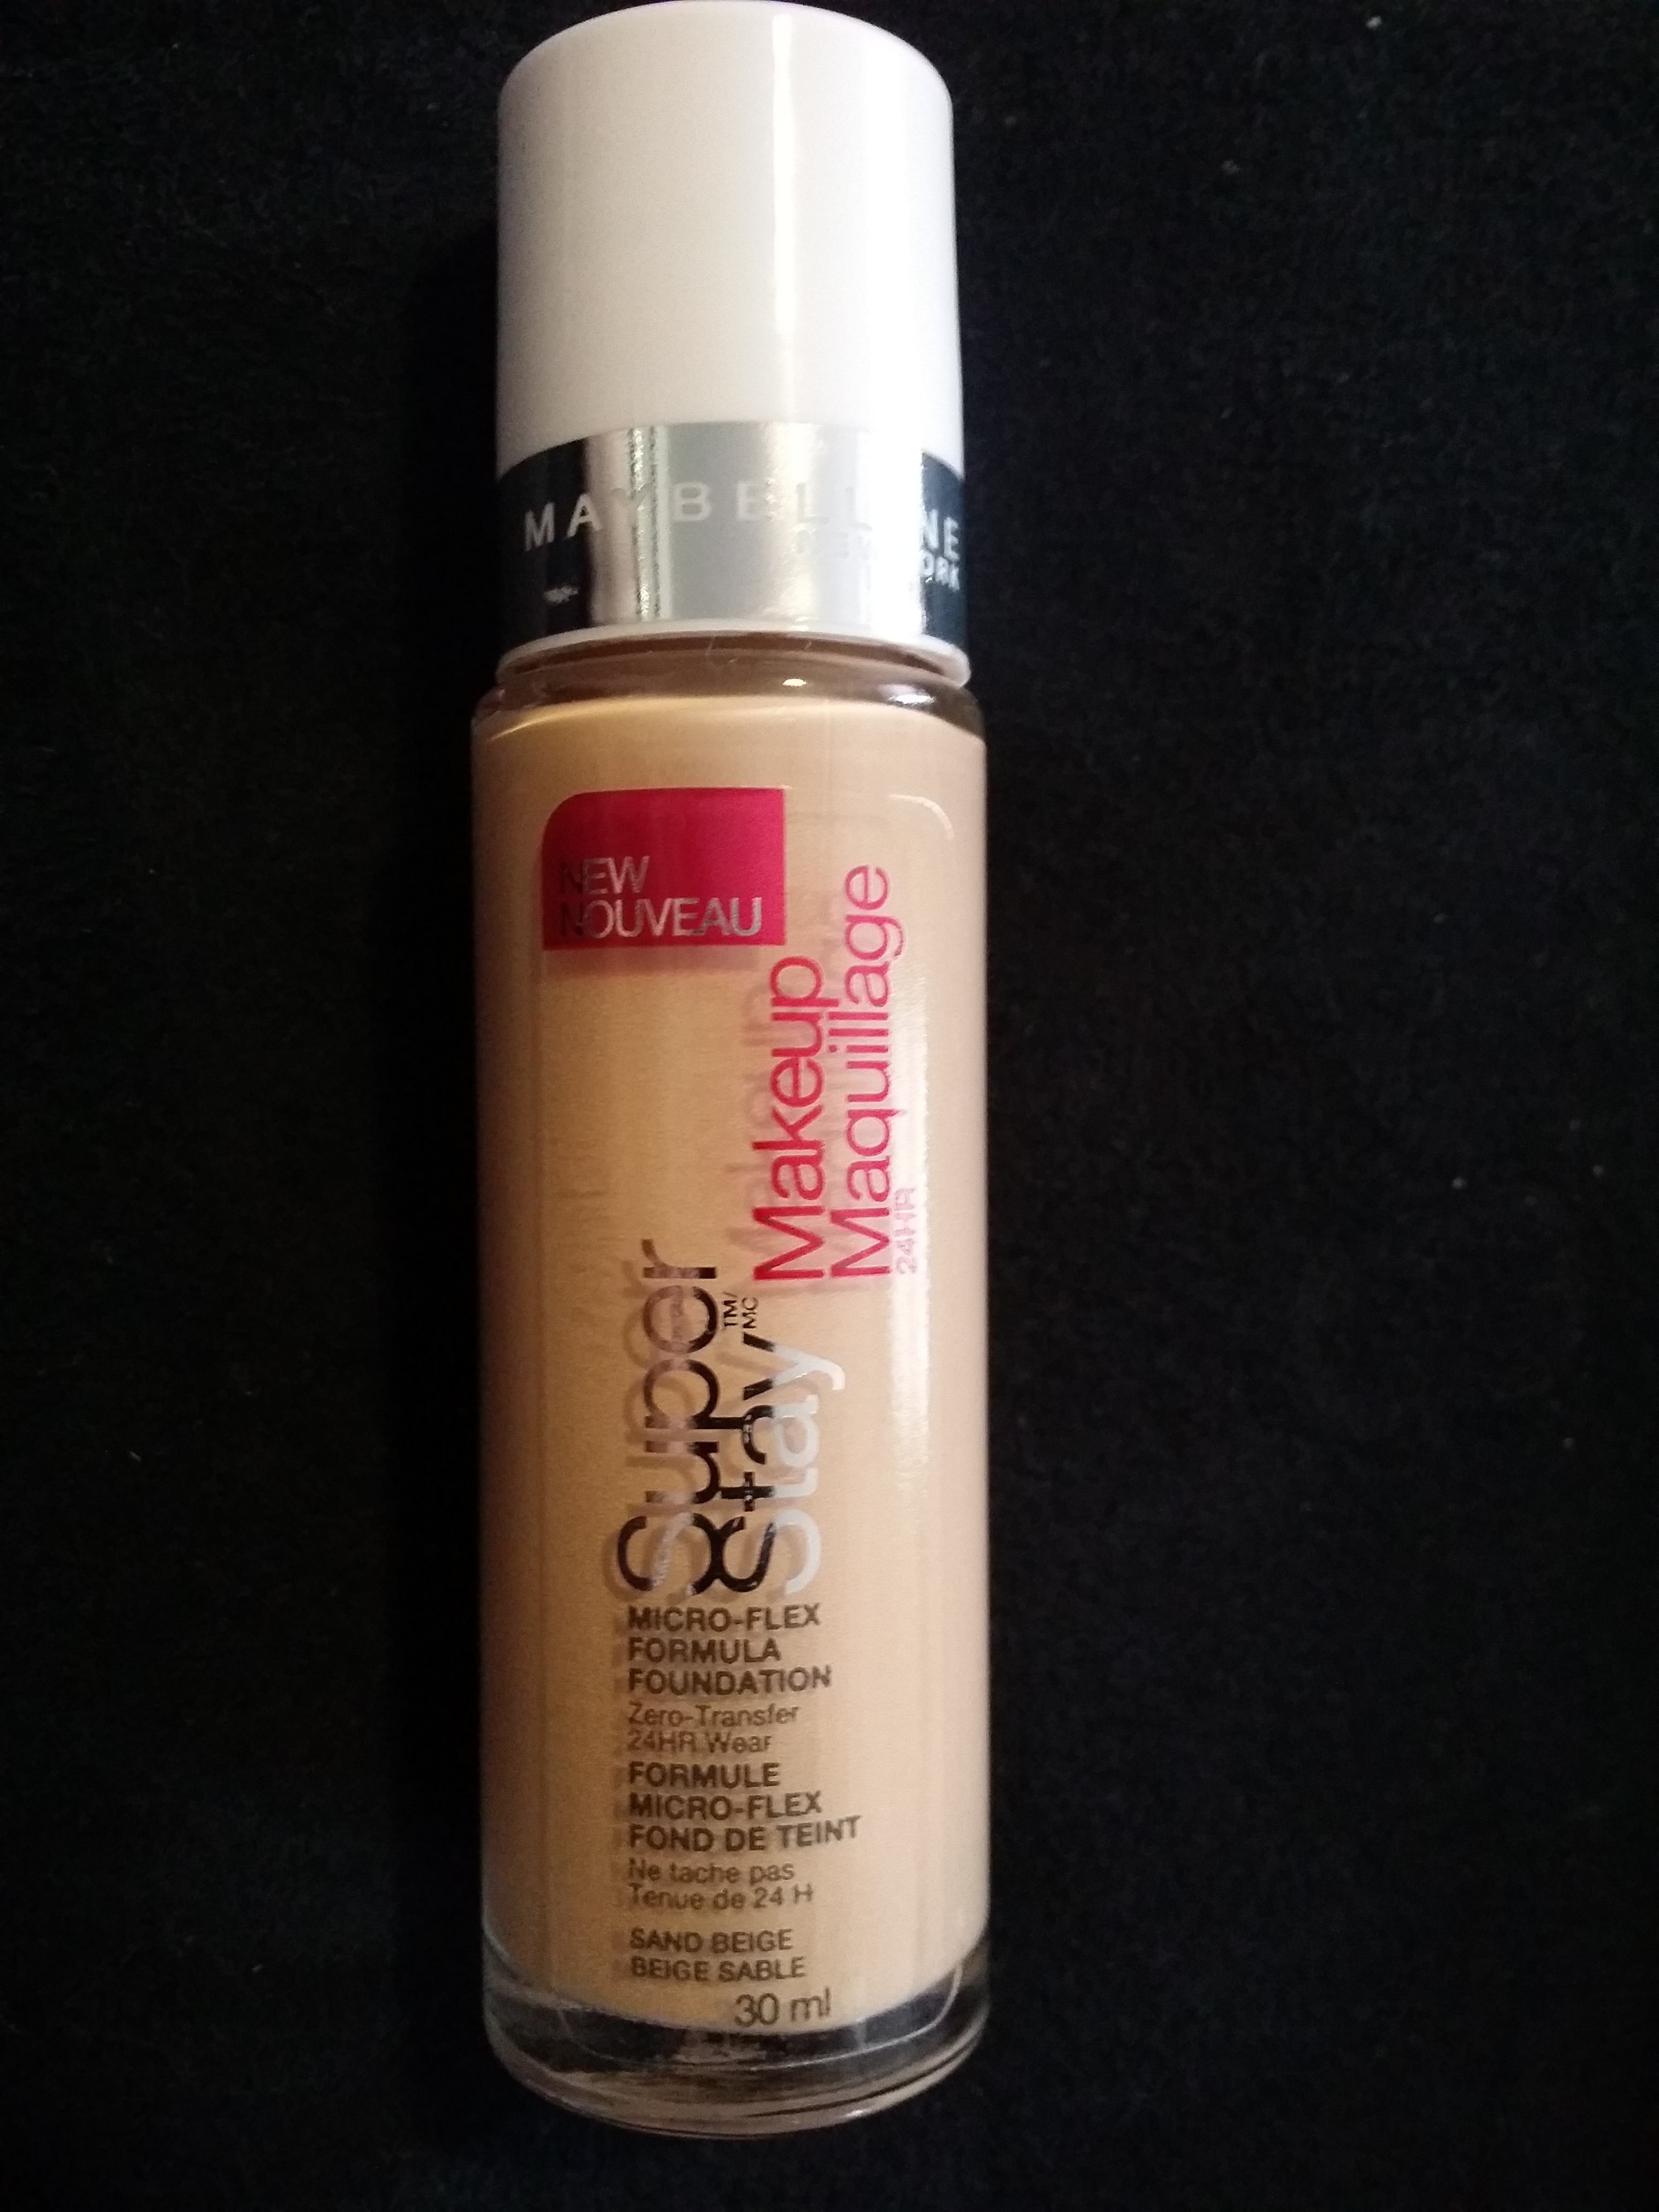 Maybelline super stay 24 hour makeup reviews in foundation for 24 hour beauty salon nyc